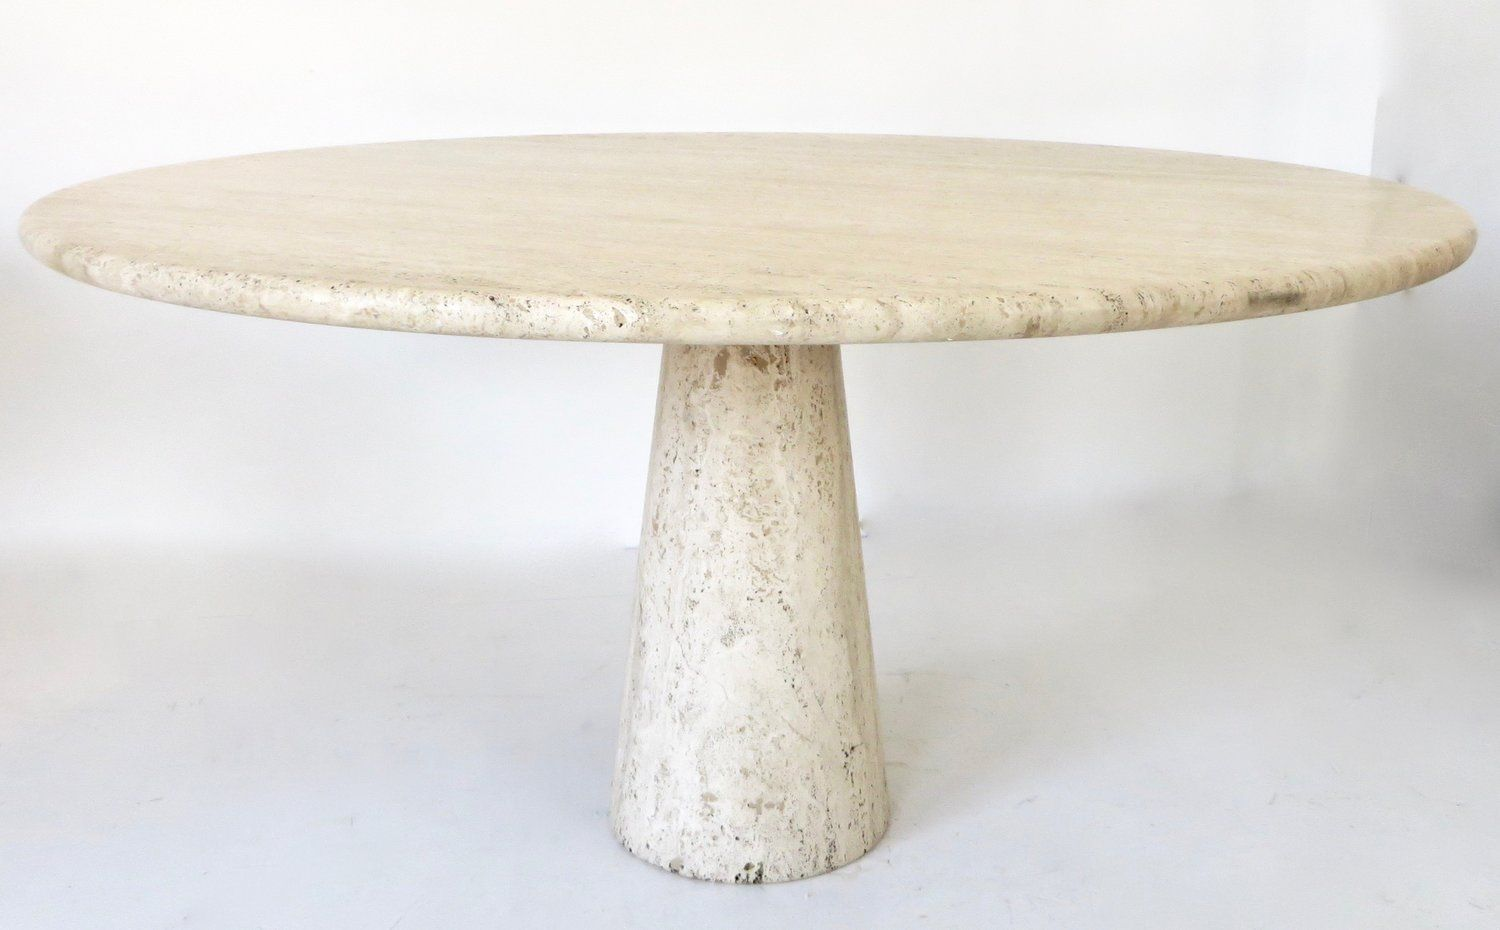 Italian Travertine Round Dining Table In The Style Of Angelo Mangiarotti Pavilion Antiques 20th C Dining Table Round Dining Table Dining Table Marble